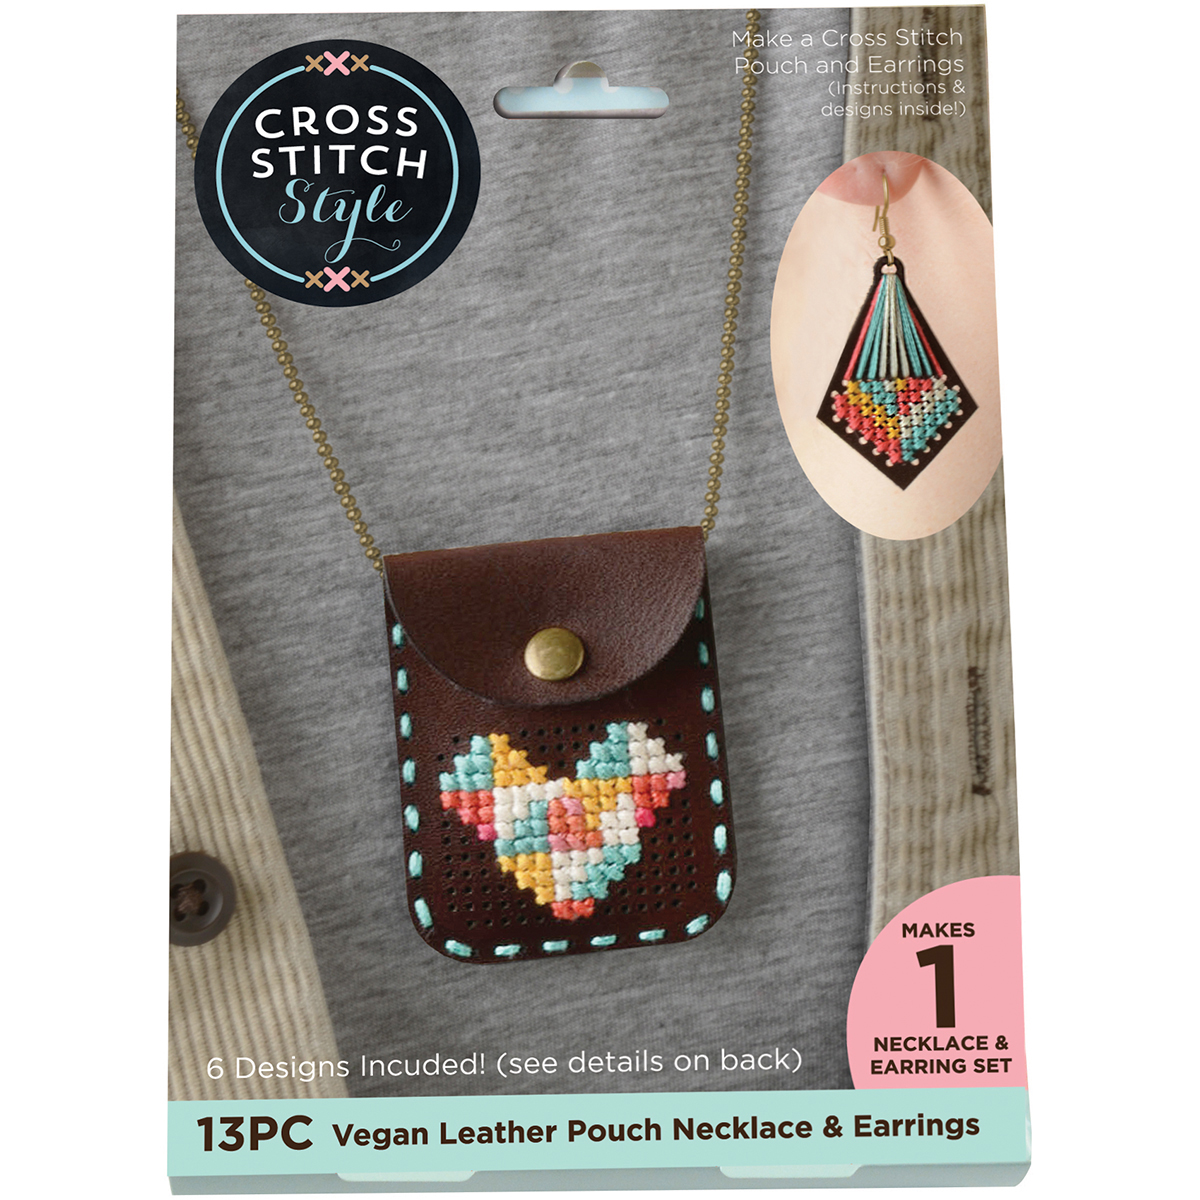 Faux Leather Pouch with Chain Punched For Cross Stitch Kit